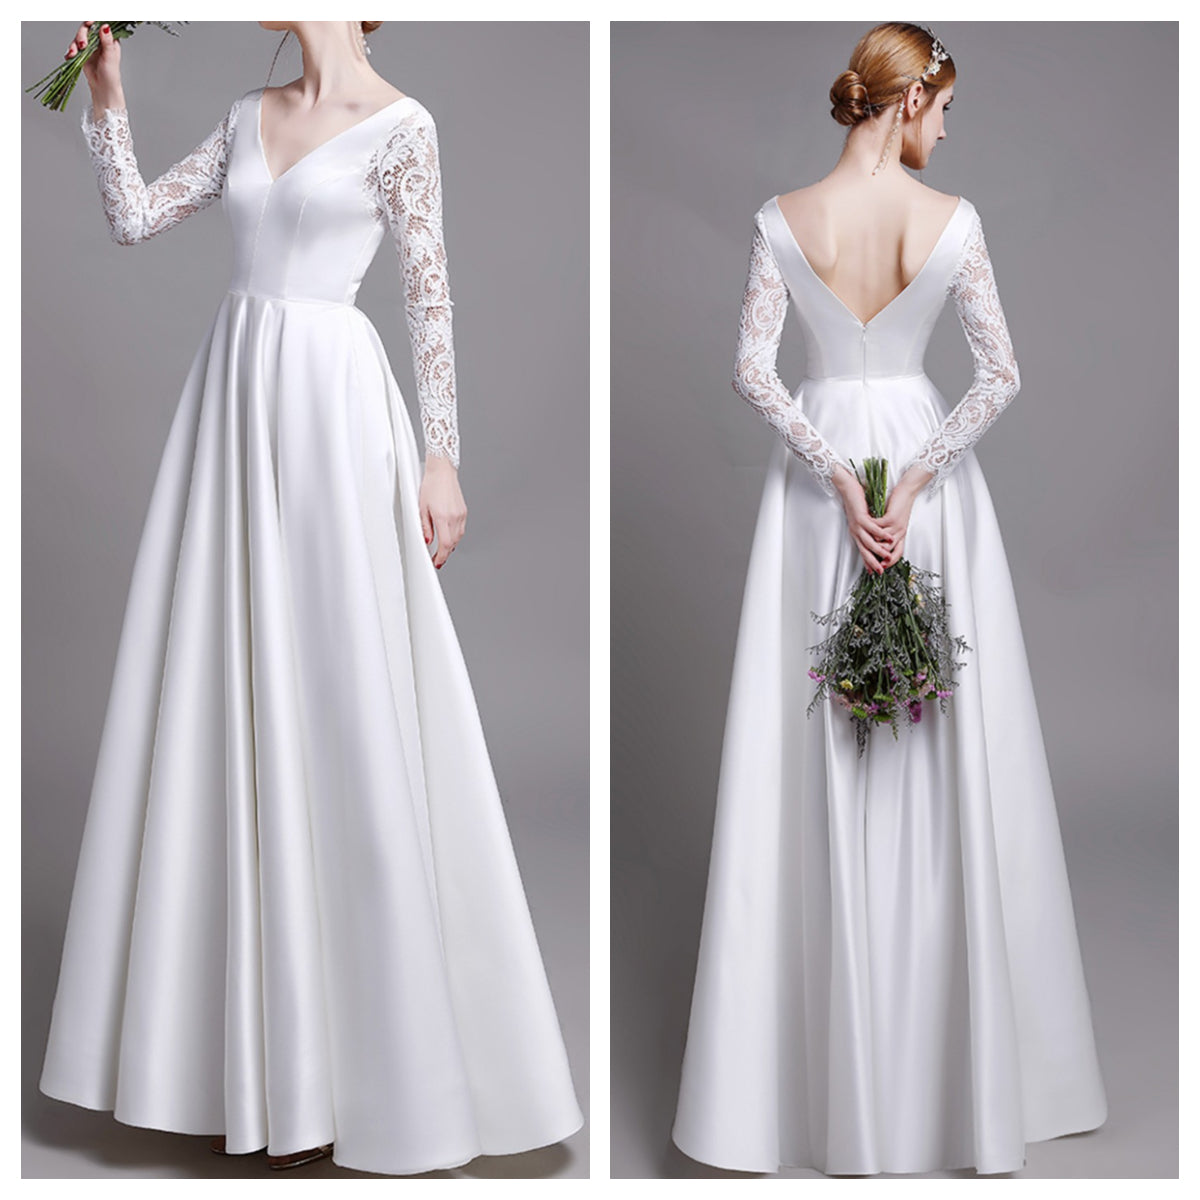 Lace Long Sleeve V Neck & Back A-Line Satin Wedding Dress